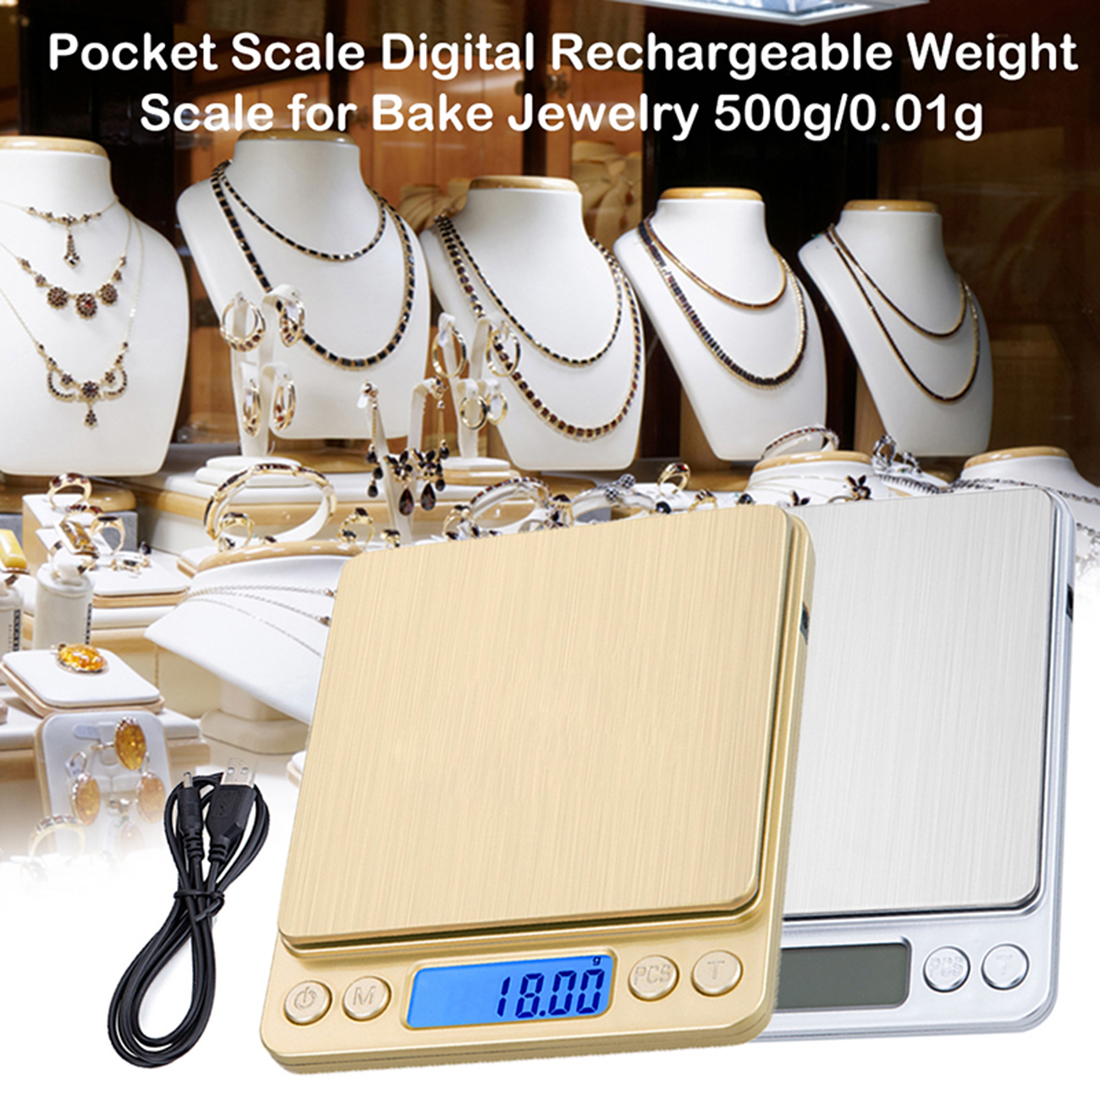 DIDIHOU Scale Digital Rechargeable Weight Scale For Bake Jewelry 500g/0.01g  Stainless Steel Digital High Accurate Scale Gold